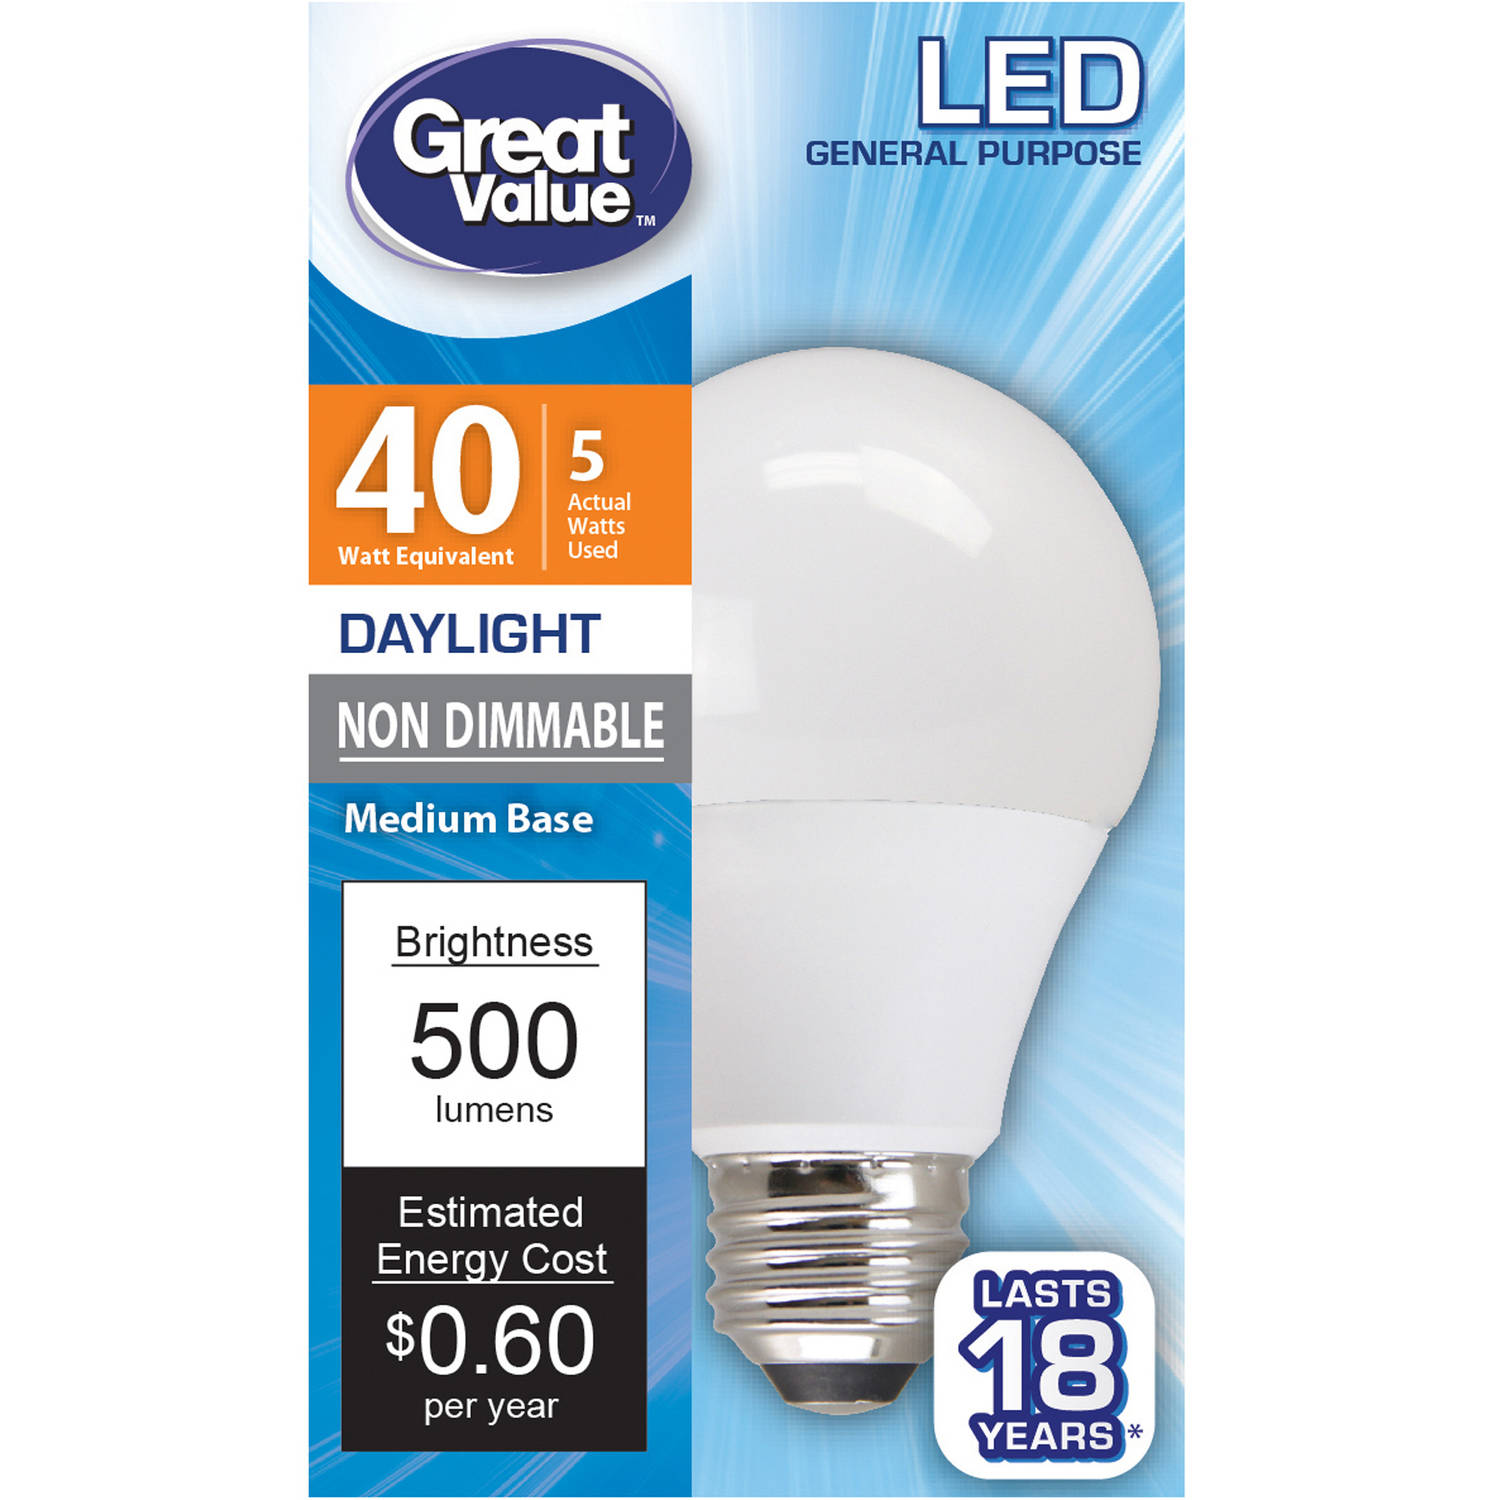 Great Value LED Light Bulb, 5W (40W Equivalent), Daylight, A19